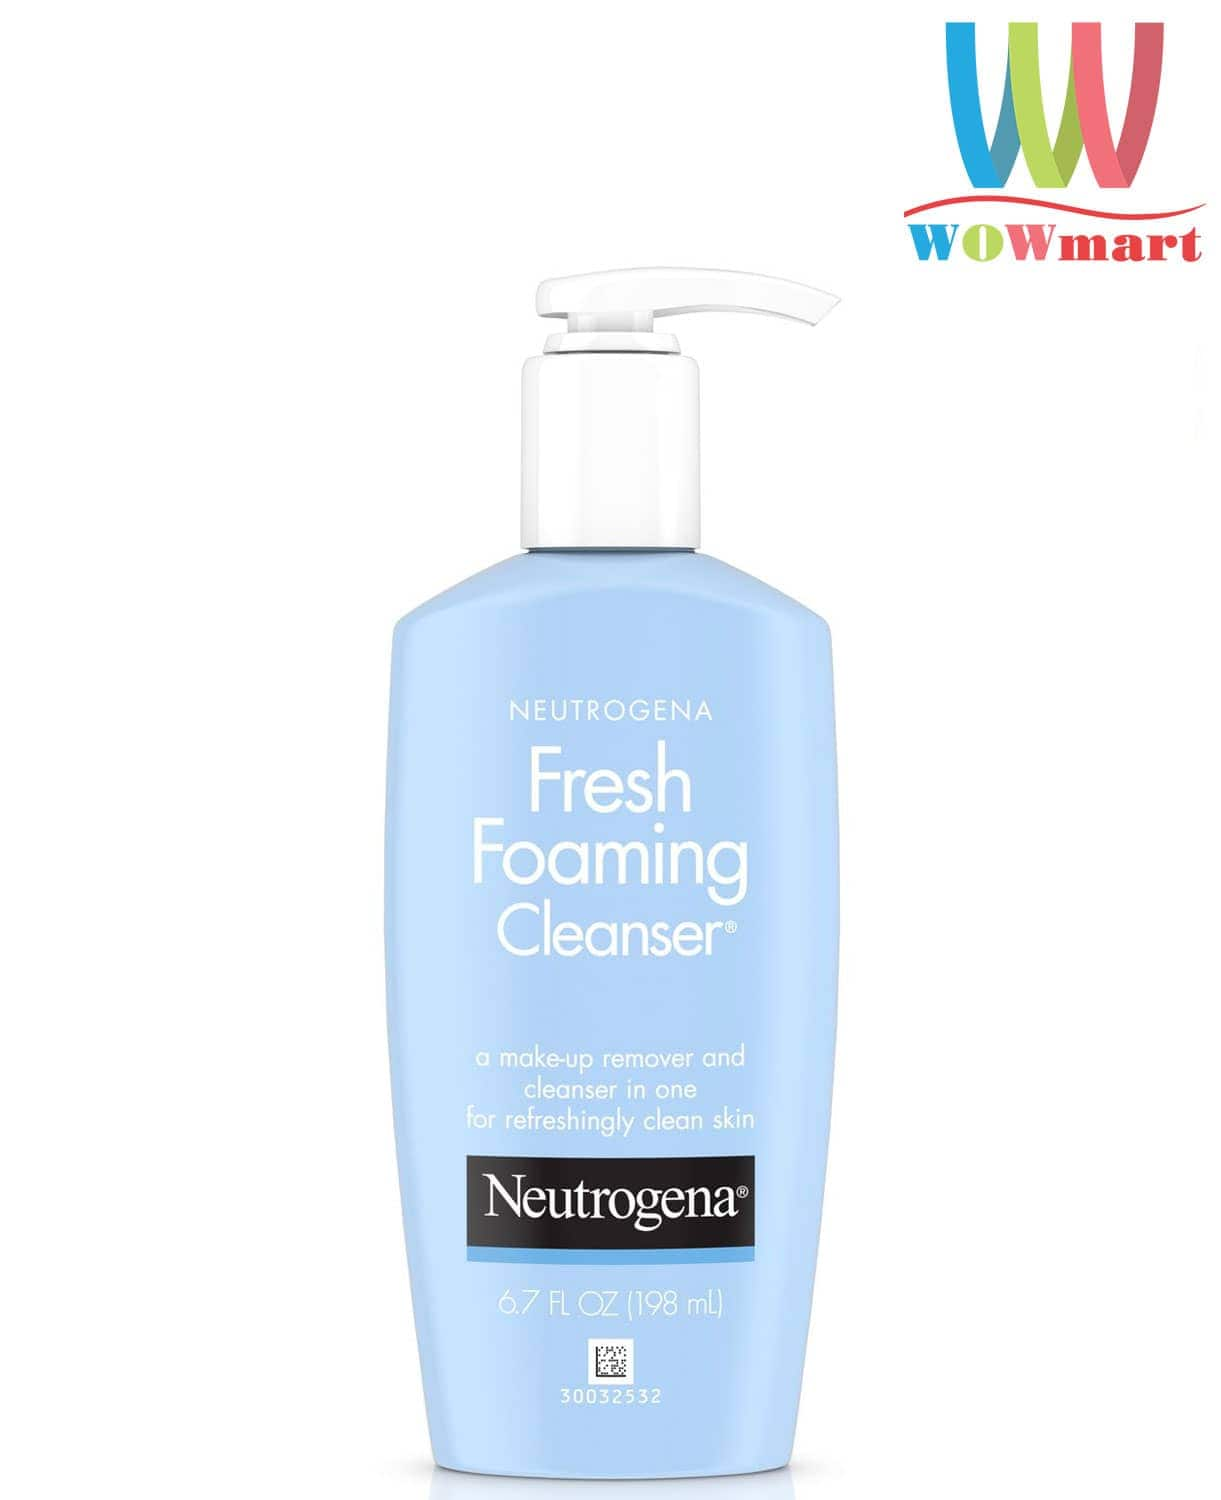 sua-rua-mat-tay-trang-neutrogena-fresh-foaming-cleanser-198ml